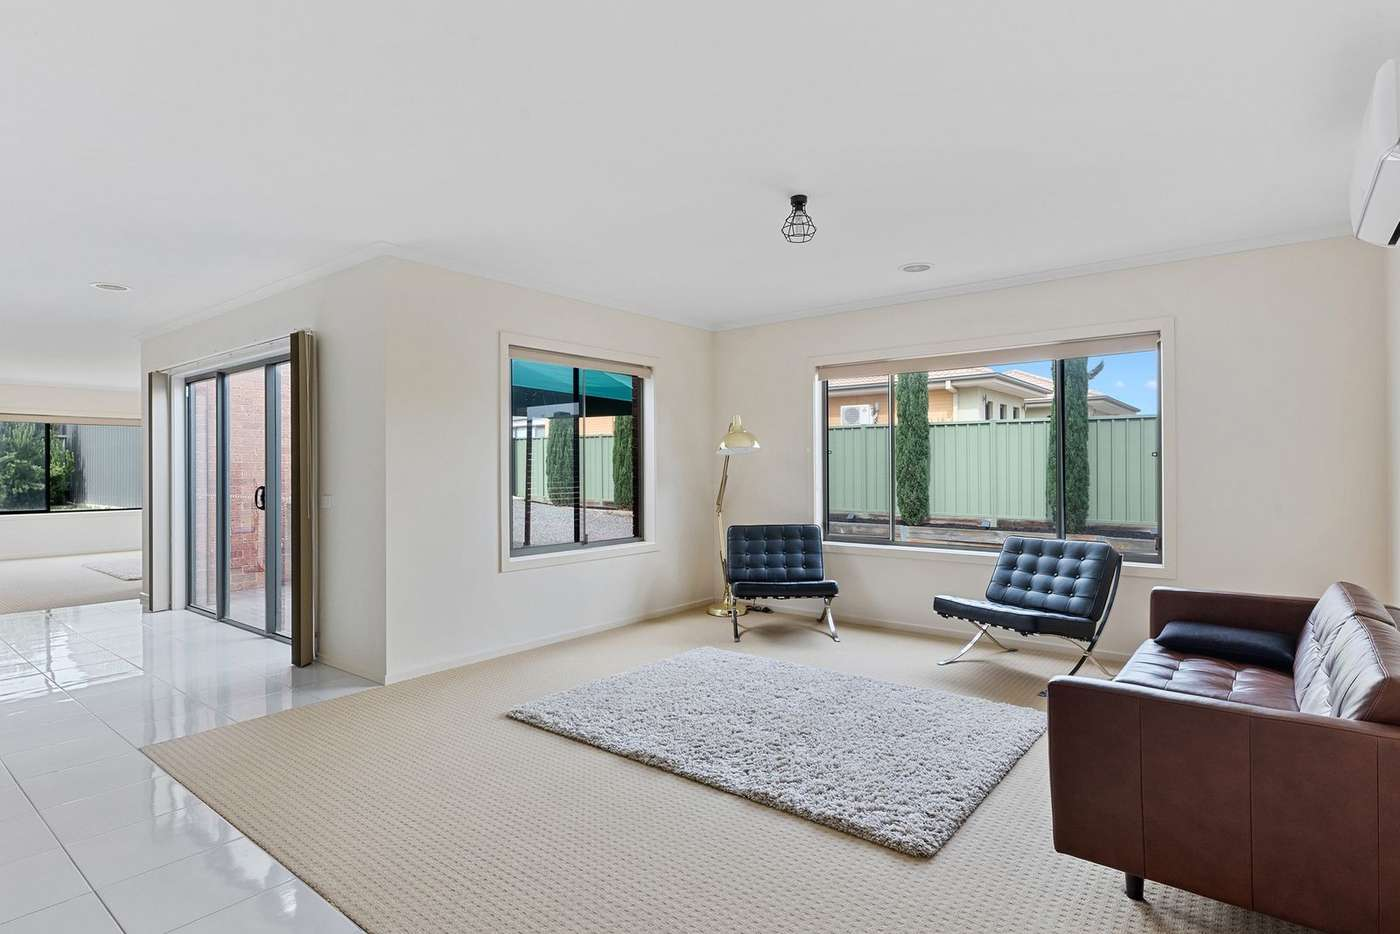 Fifth view of Homely house listing, 23 Lyndam Avenue, Maiden Gully VIC 3551